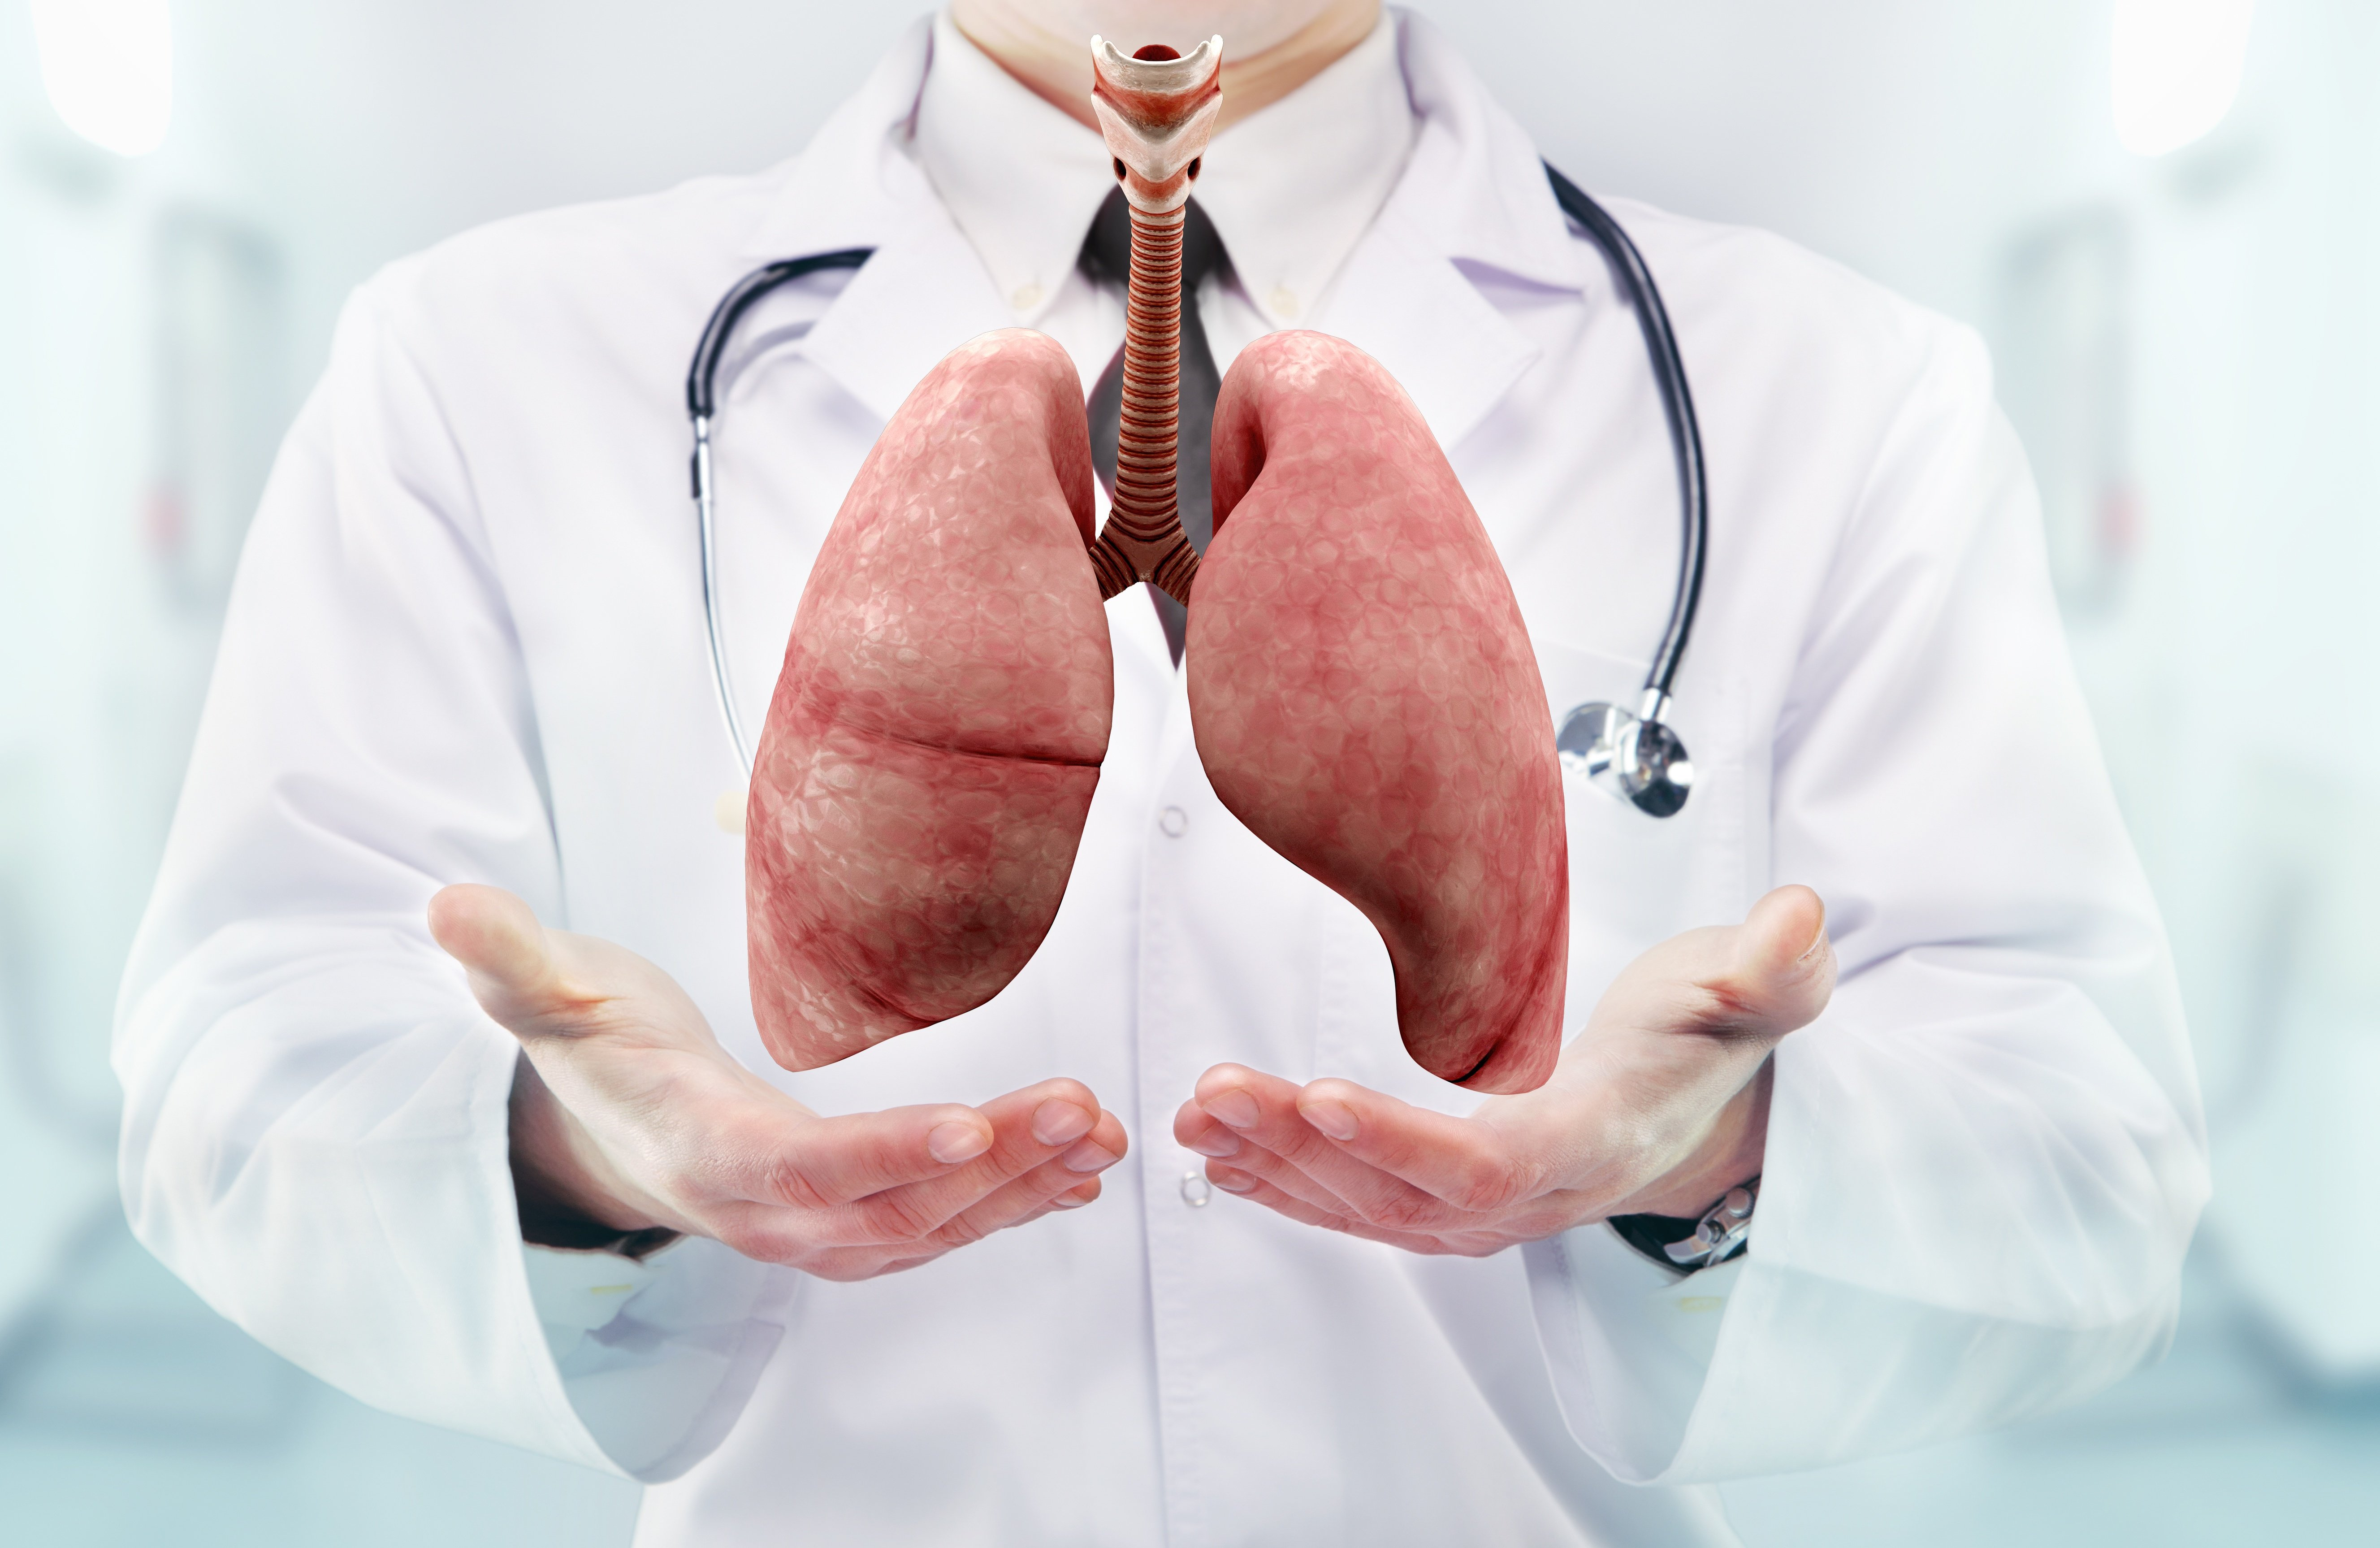 COPD and Heart Failure: What are the Symptoms and how are